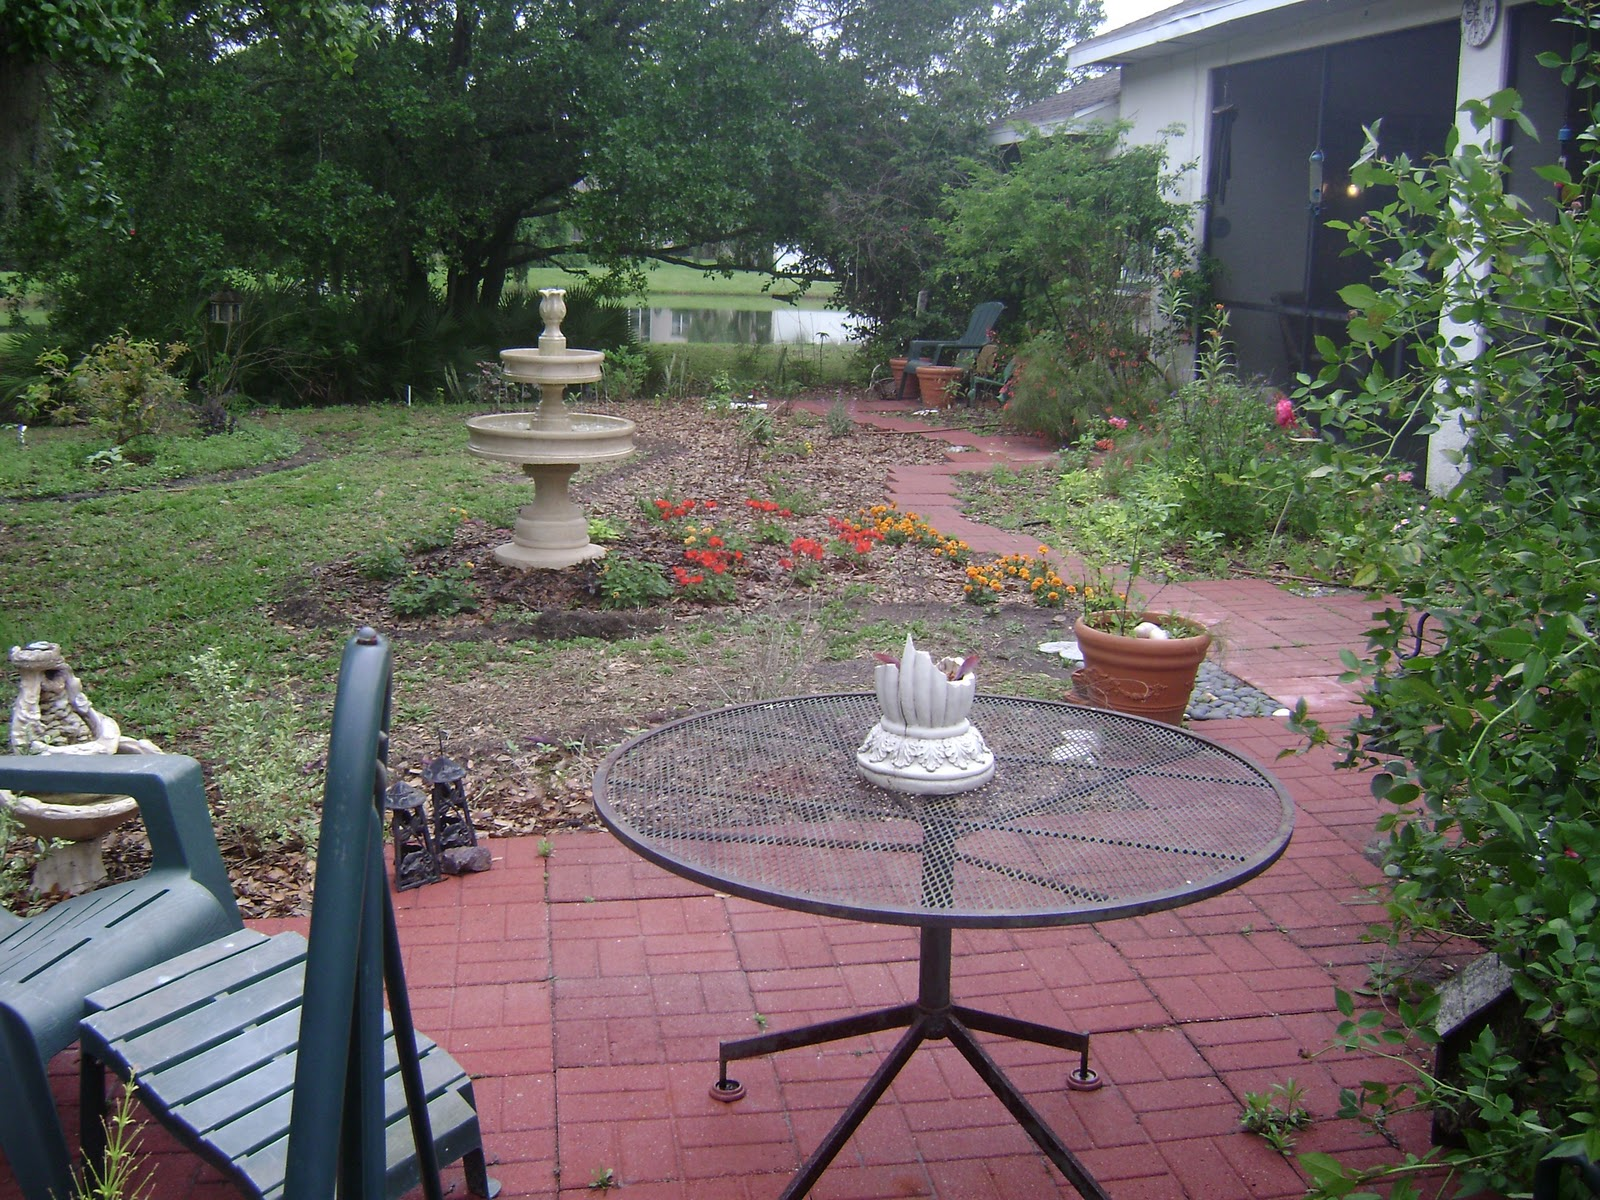 Paver Patio Ideas For Enchanting Backyard: Serendipity In The Garden: Paving The Way For A Friend